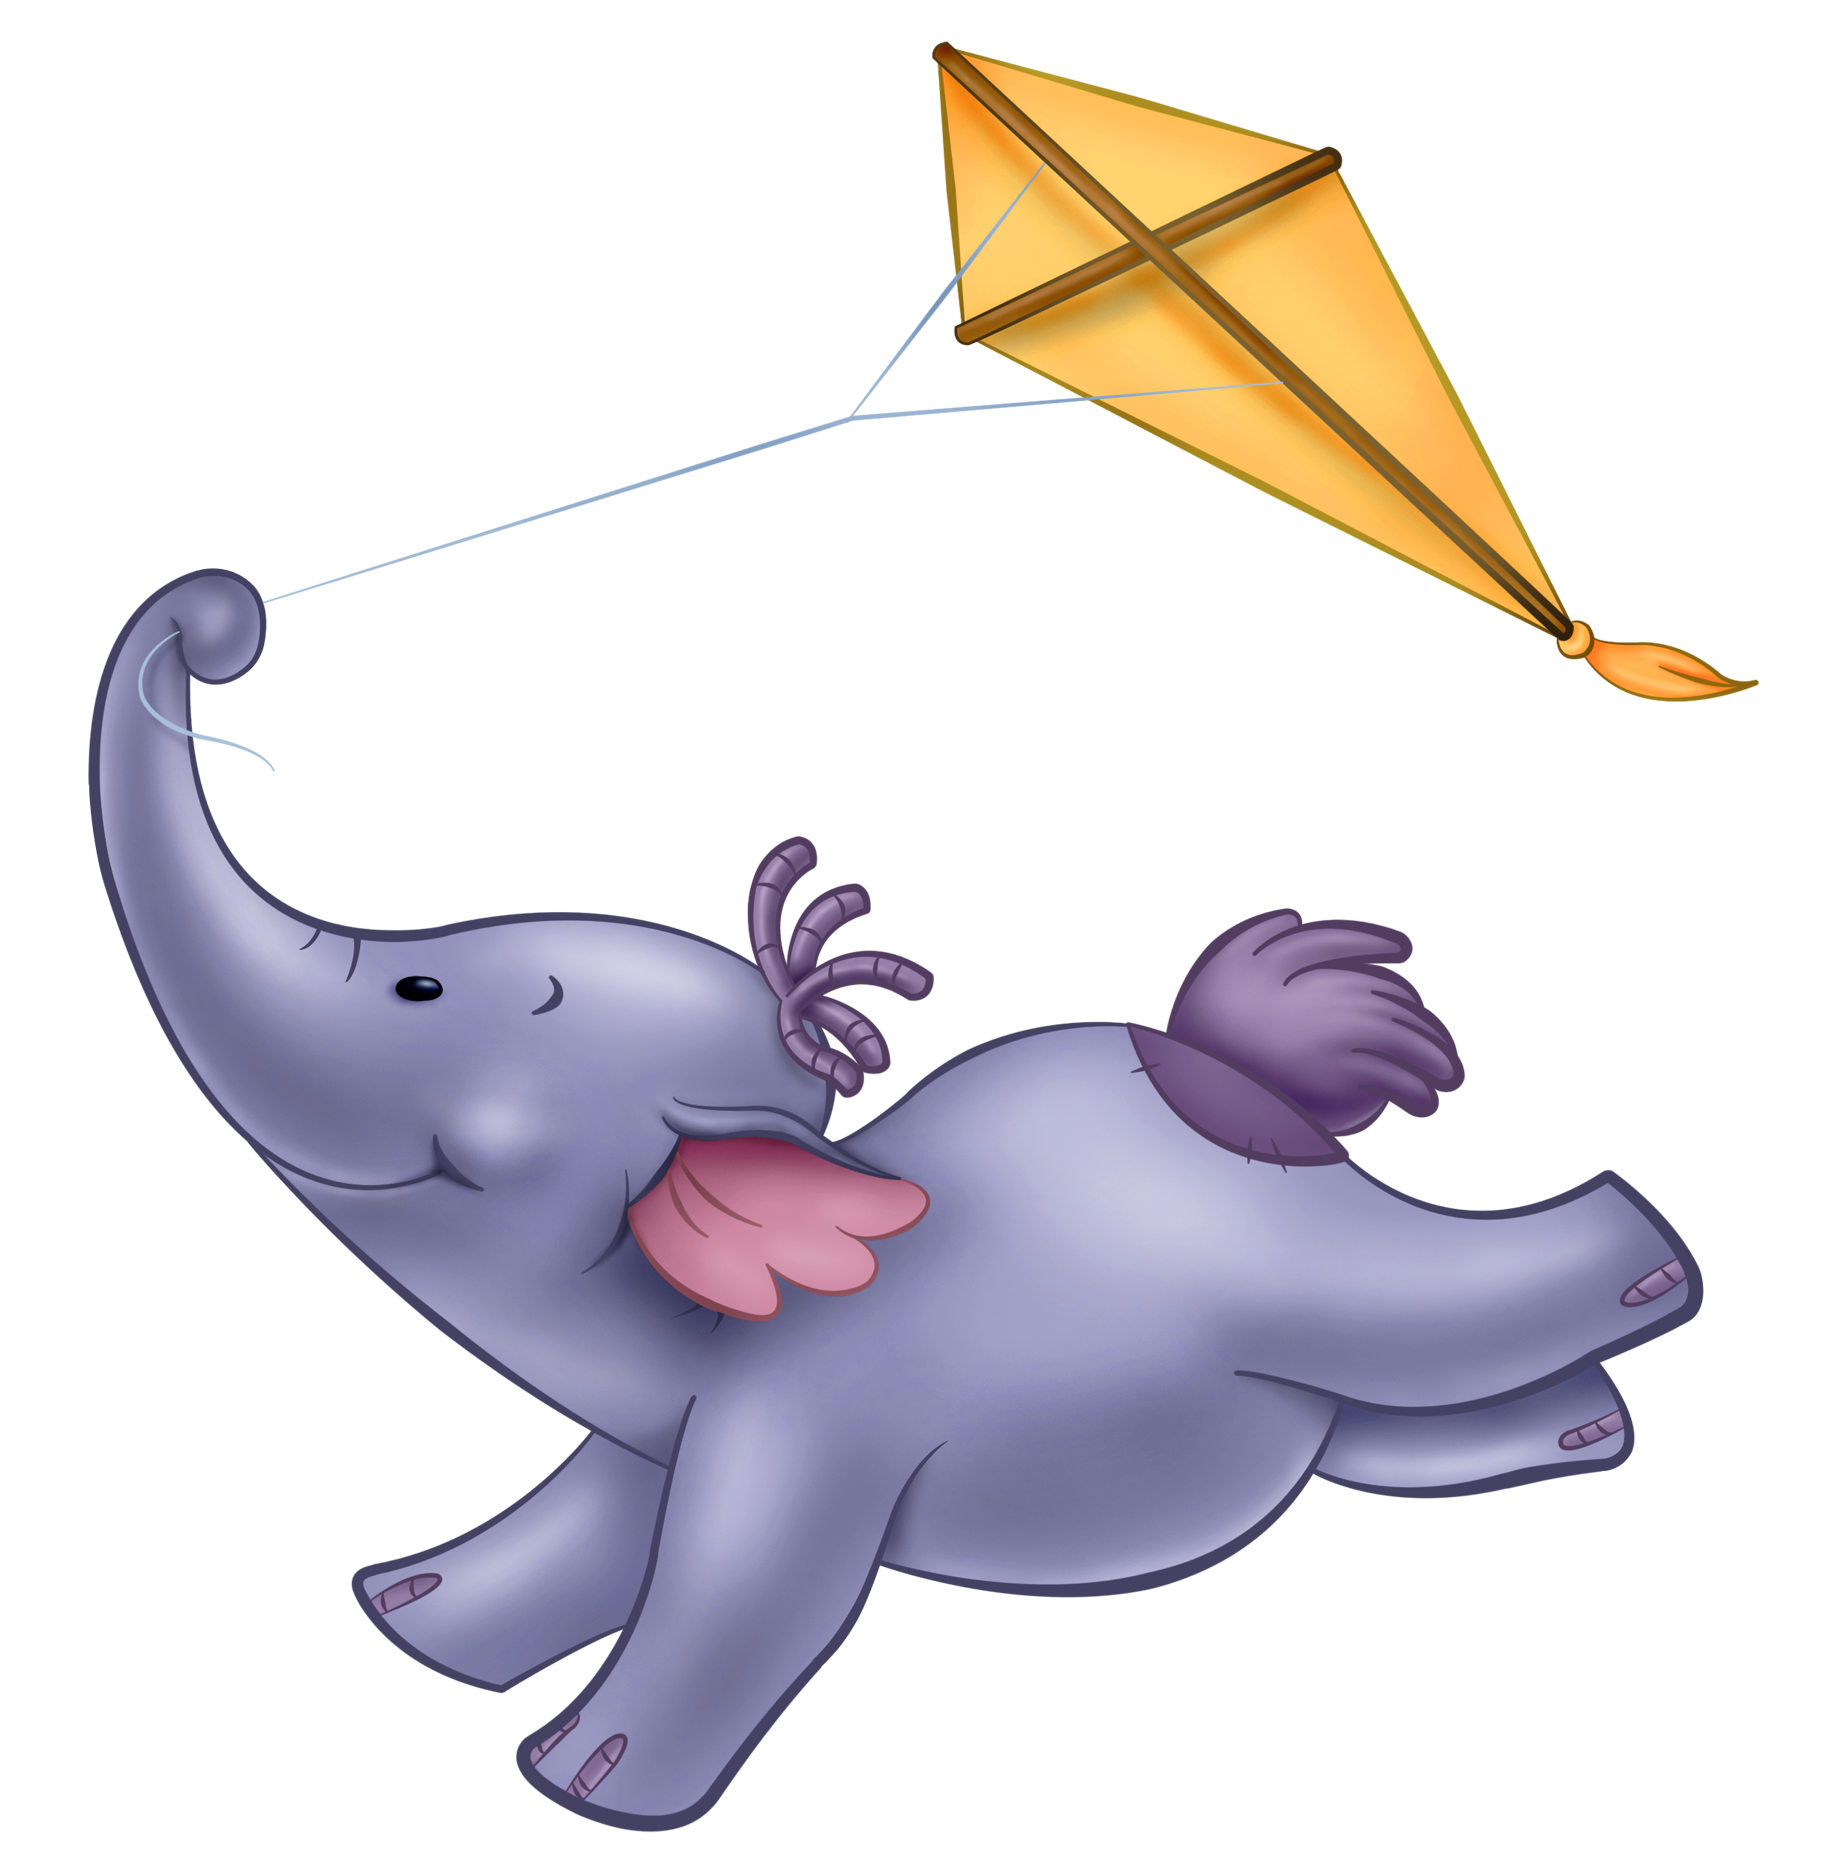 Cute elephant png. Cartoon picture gallery yopriceville